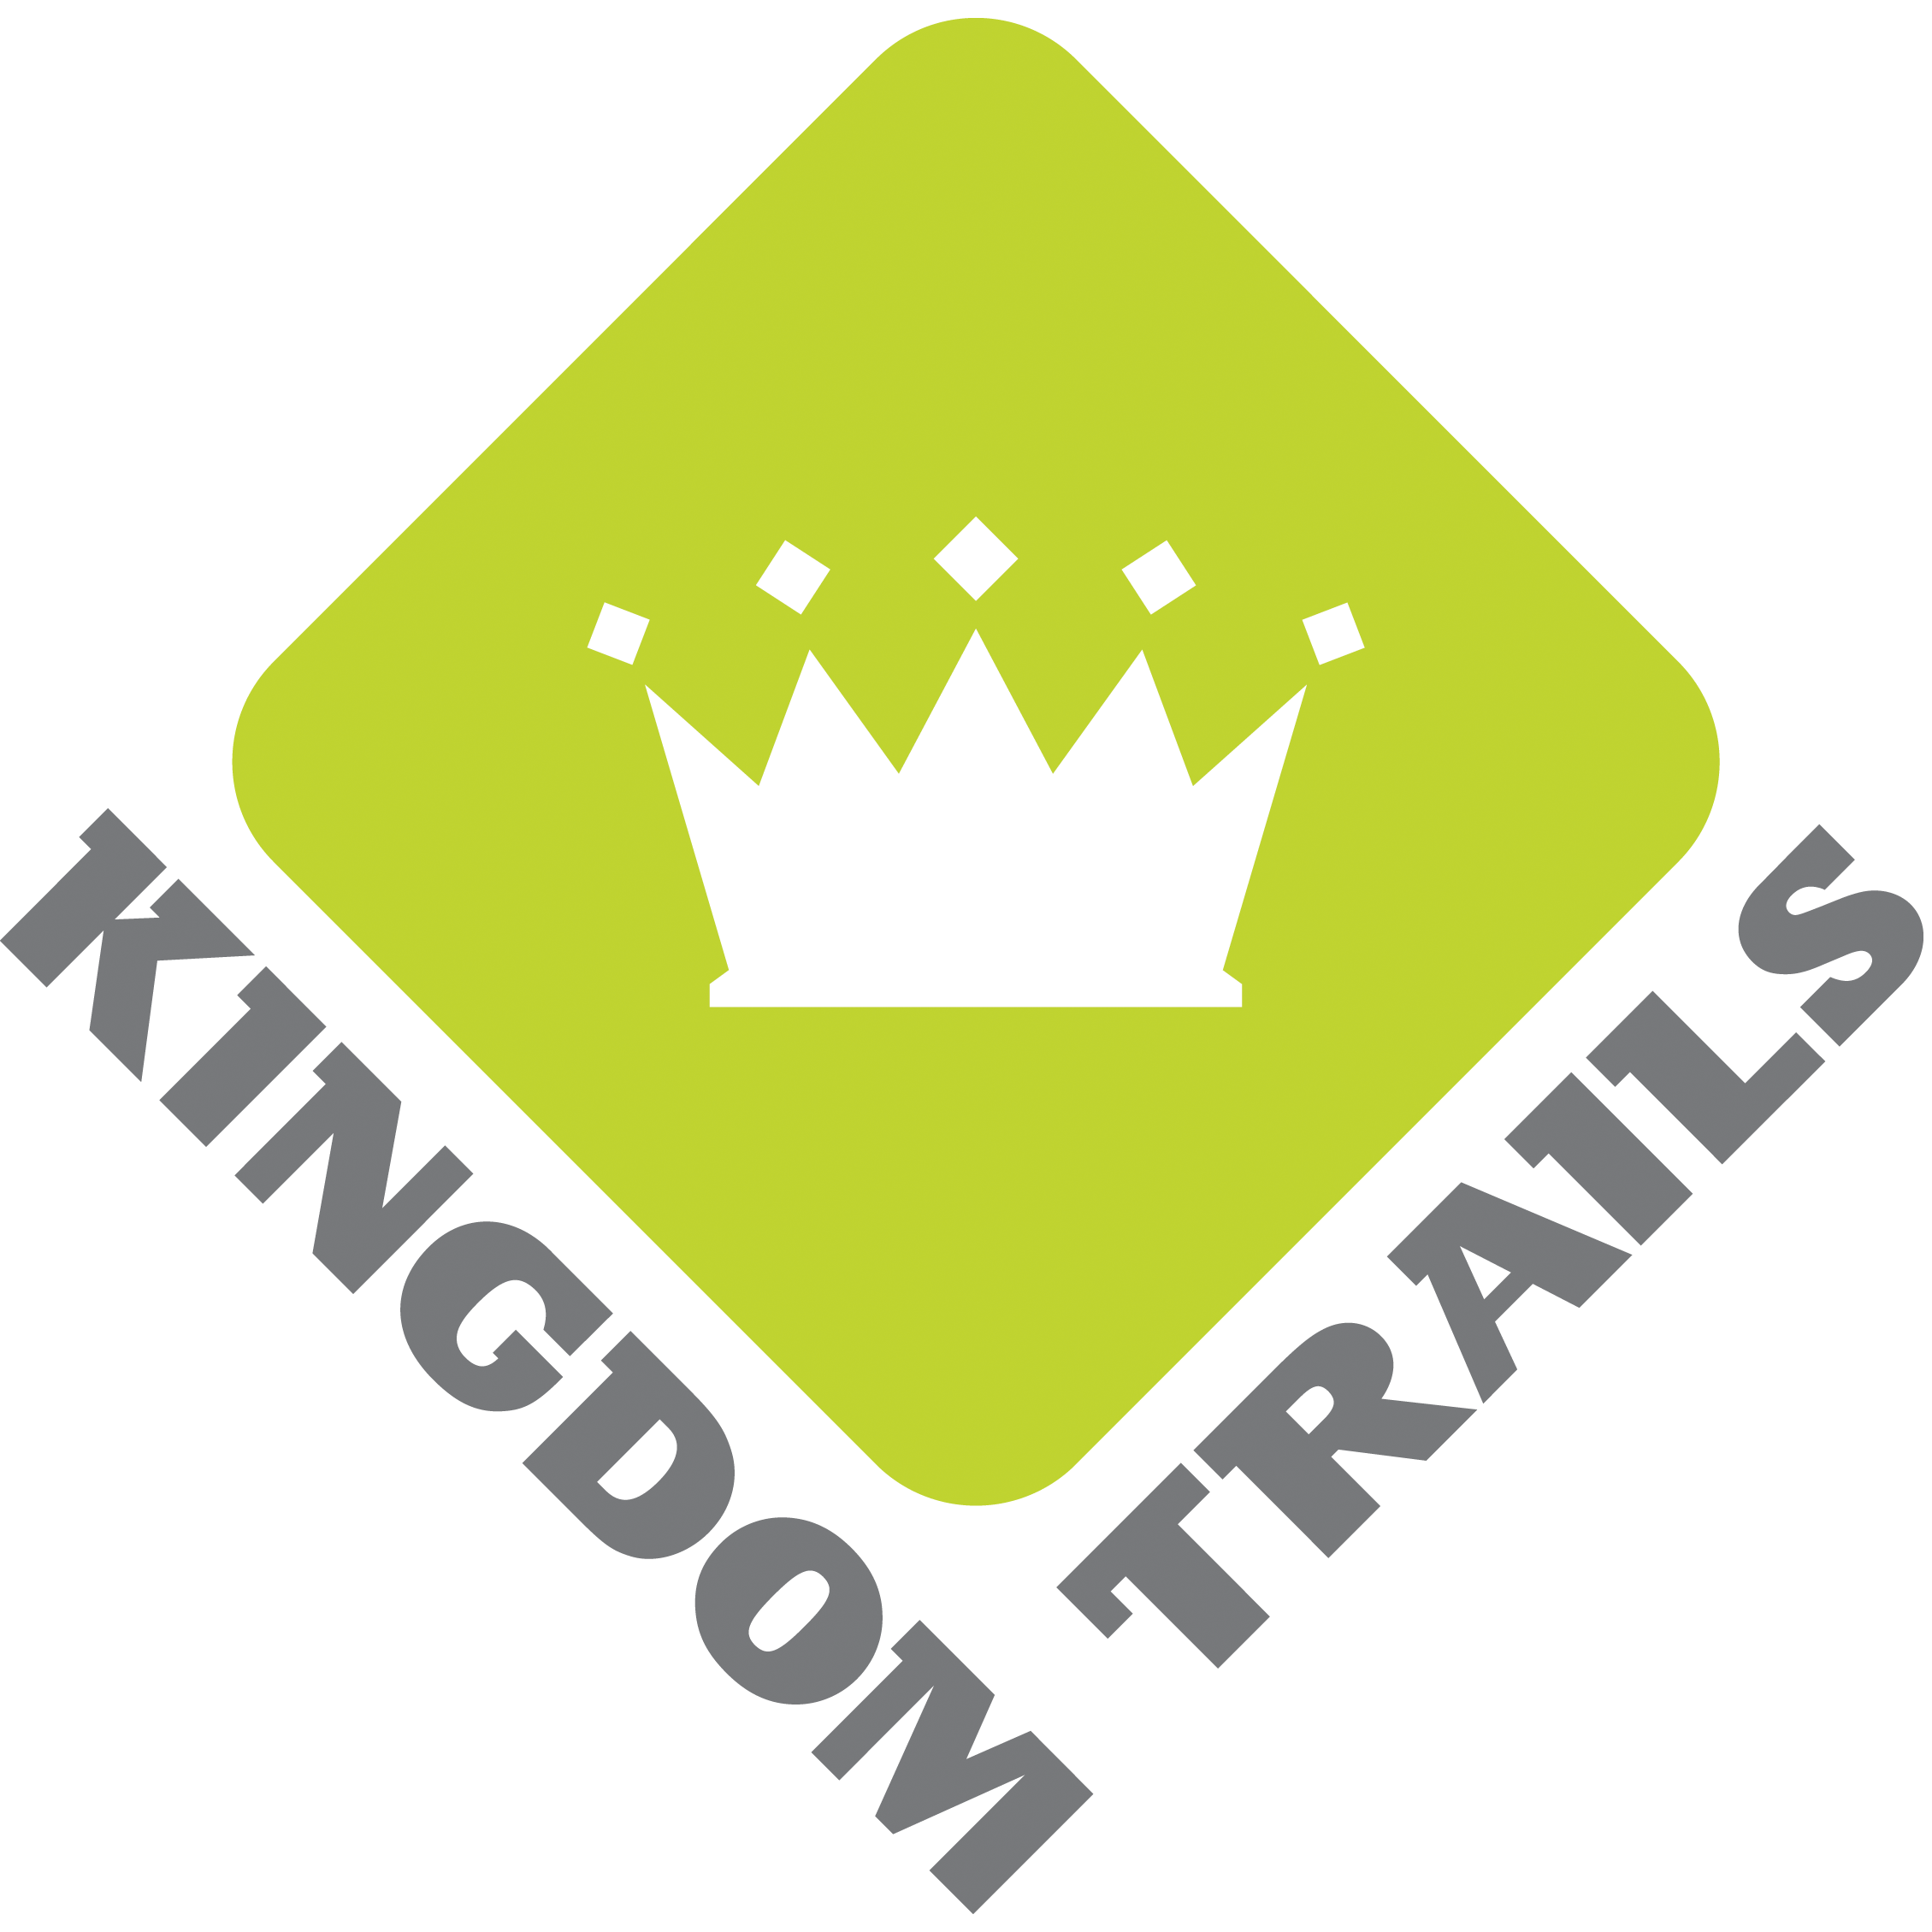 Kingdom Trails